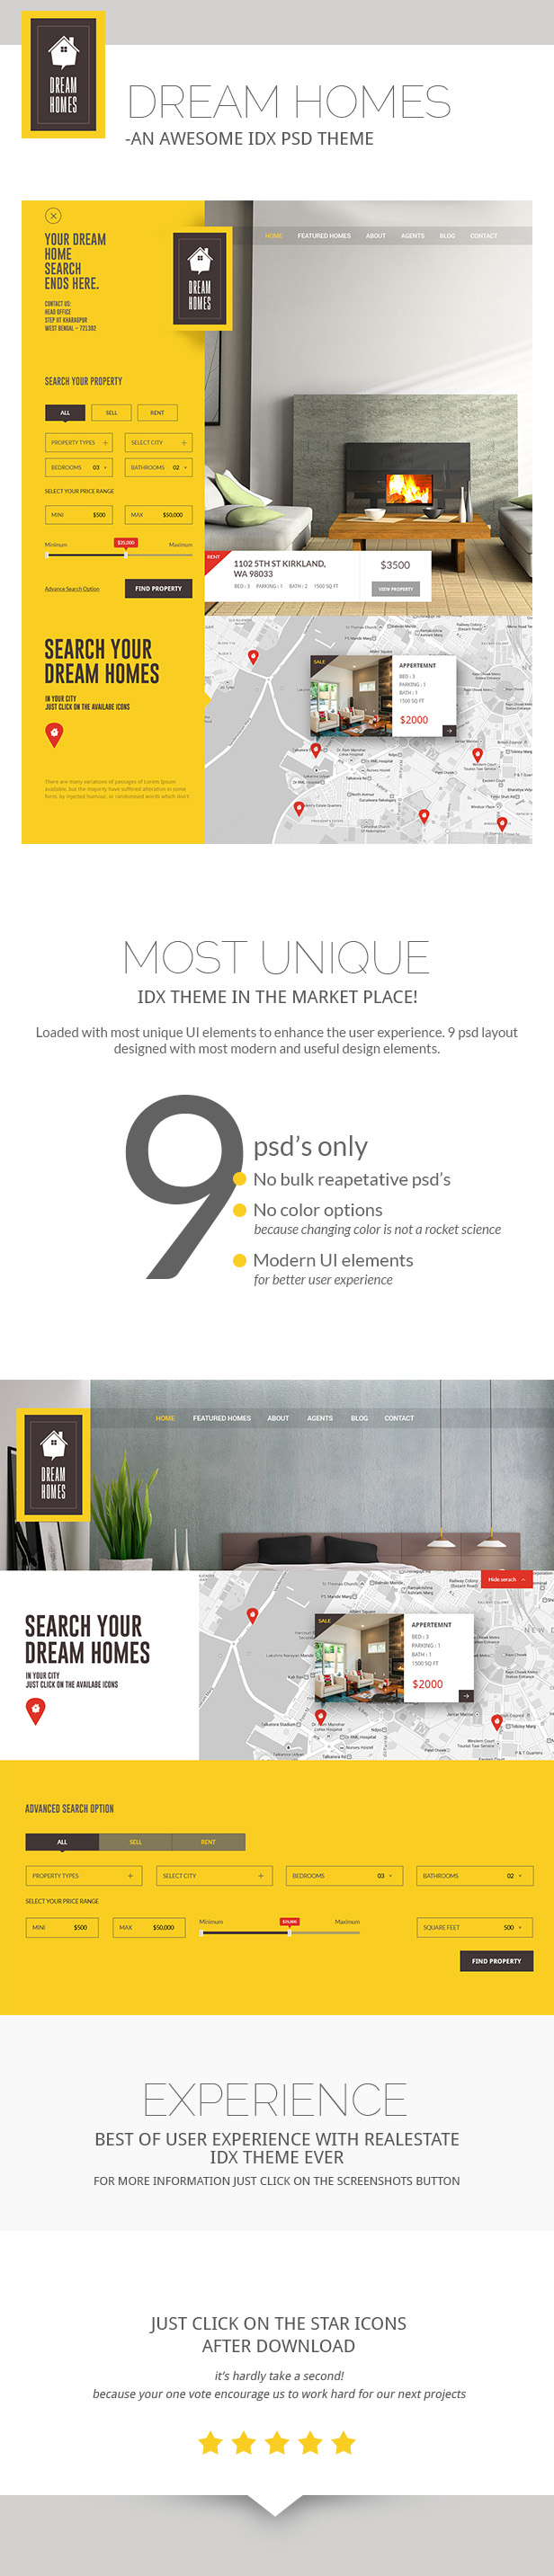 Dream Home-An Awesome IDX Psd Theme